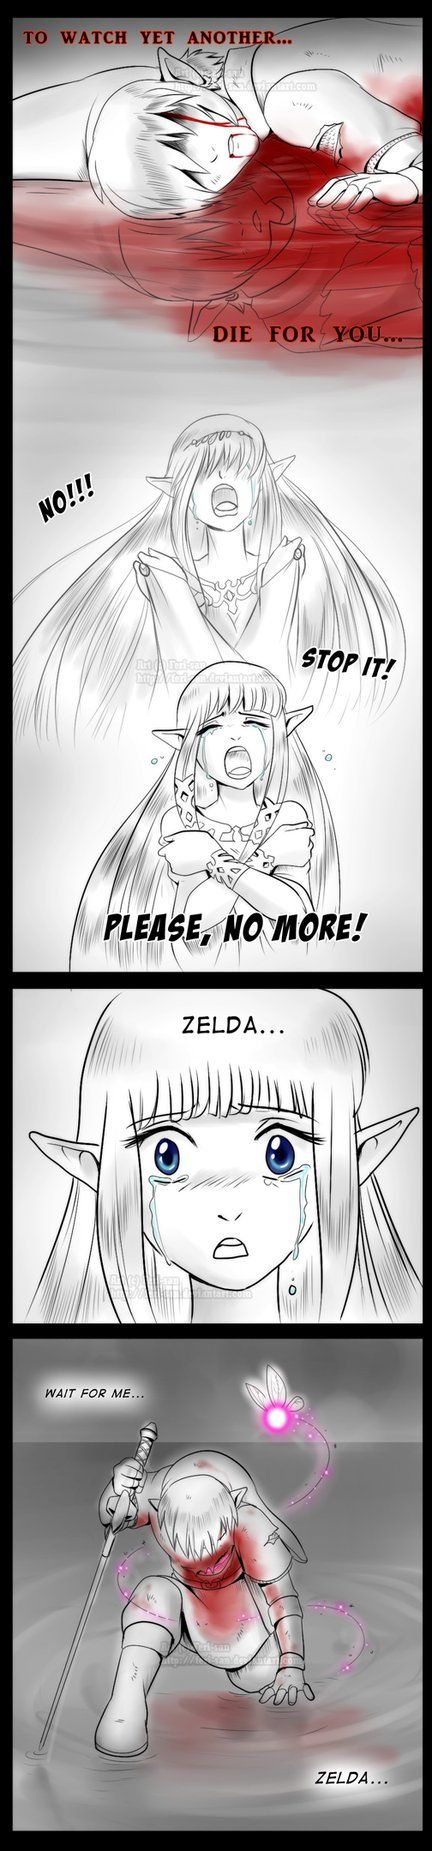 Finally Over P.3 by Ferisae on deviantART